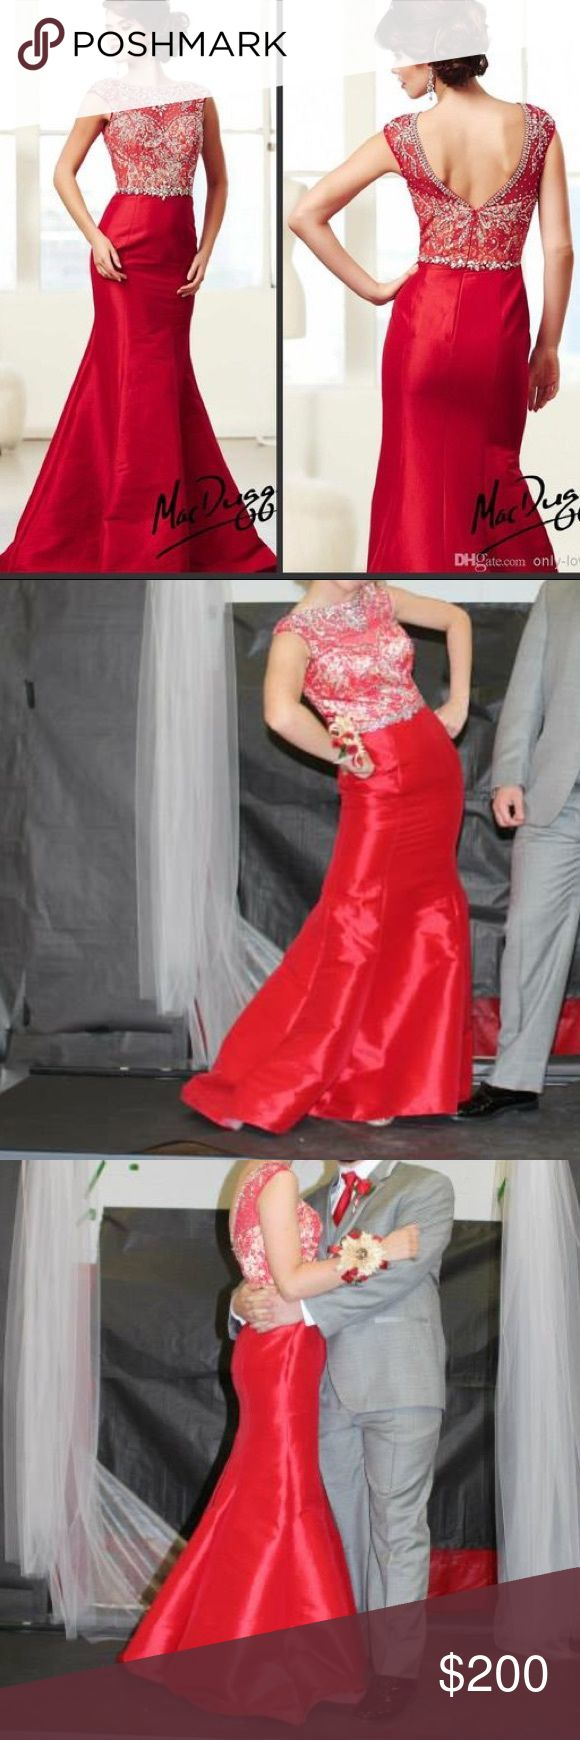 Gorgeous Mac Duggal Prom Dress Gorgeous Mac Duggal red prom dress with beading! Worn twice, in great condition. From a smoke free and pet free home. Classy and Elegant! Mac Duggal Dresses Prom